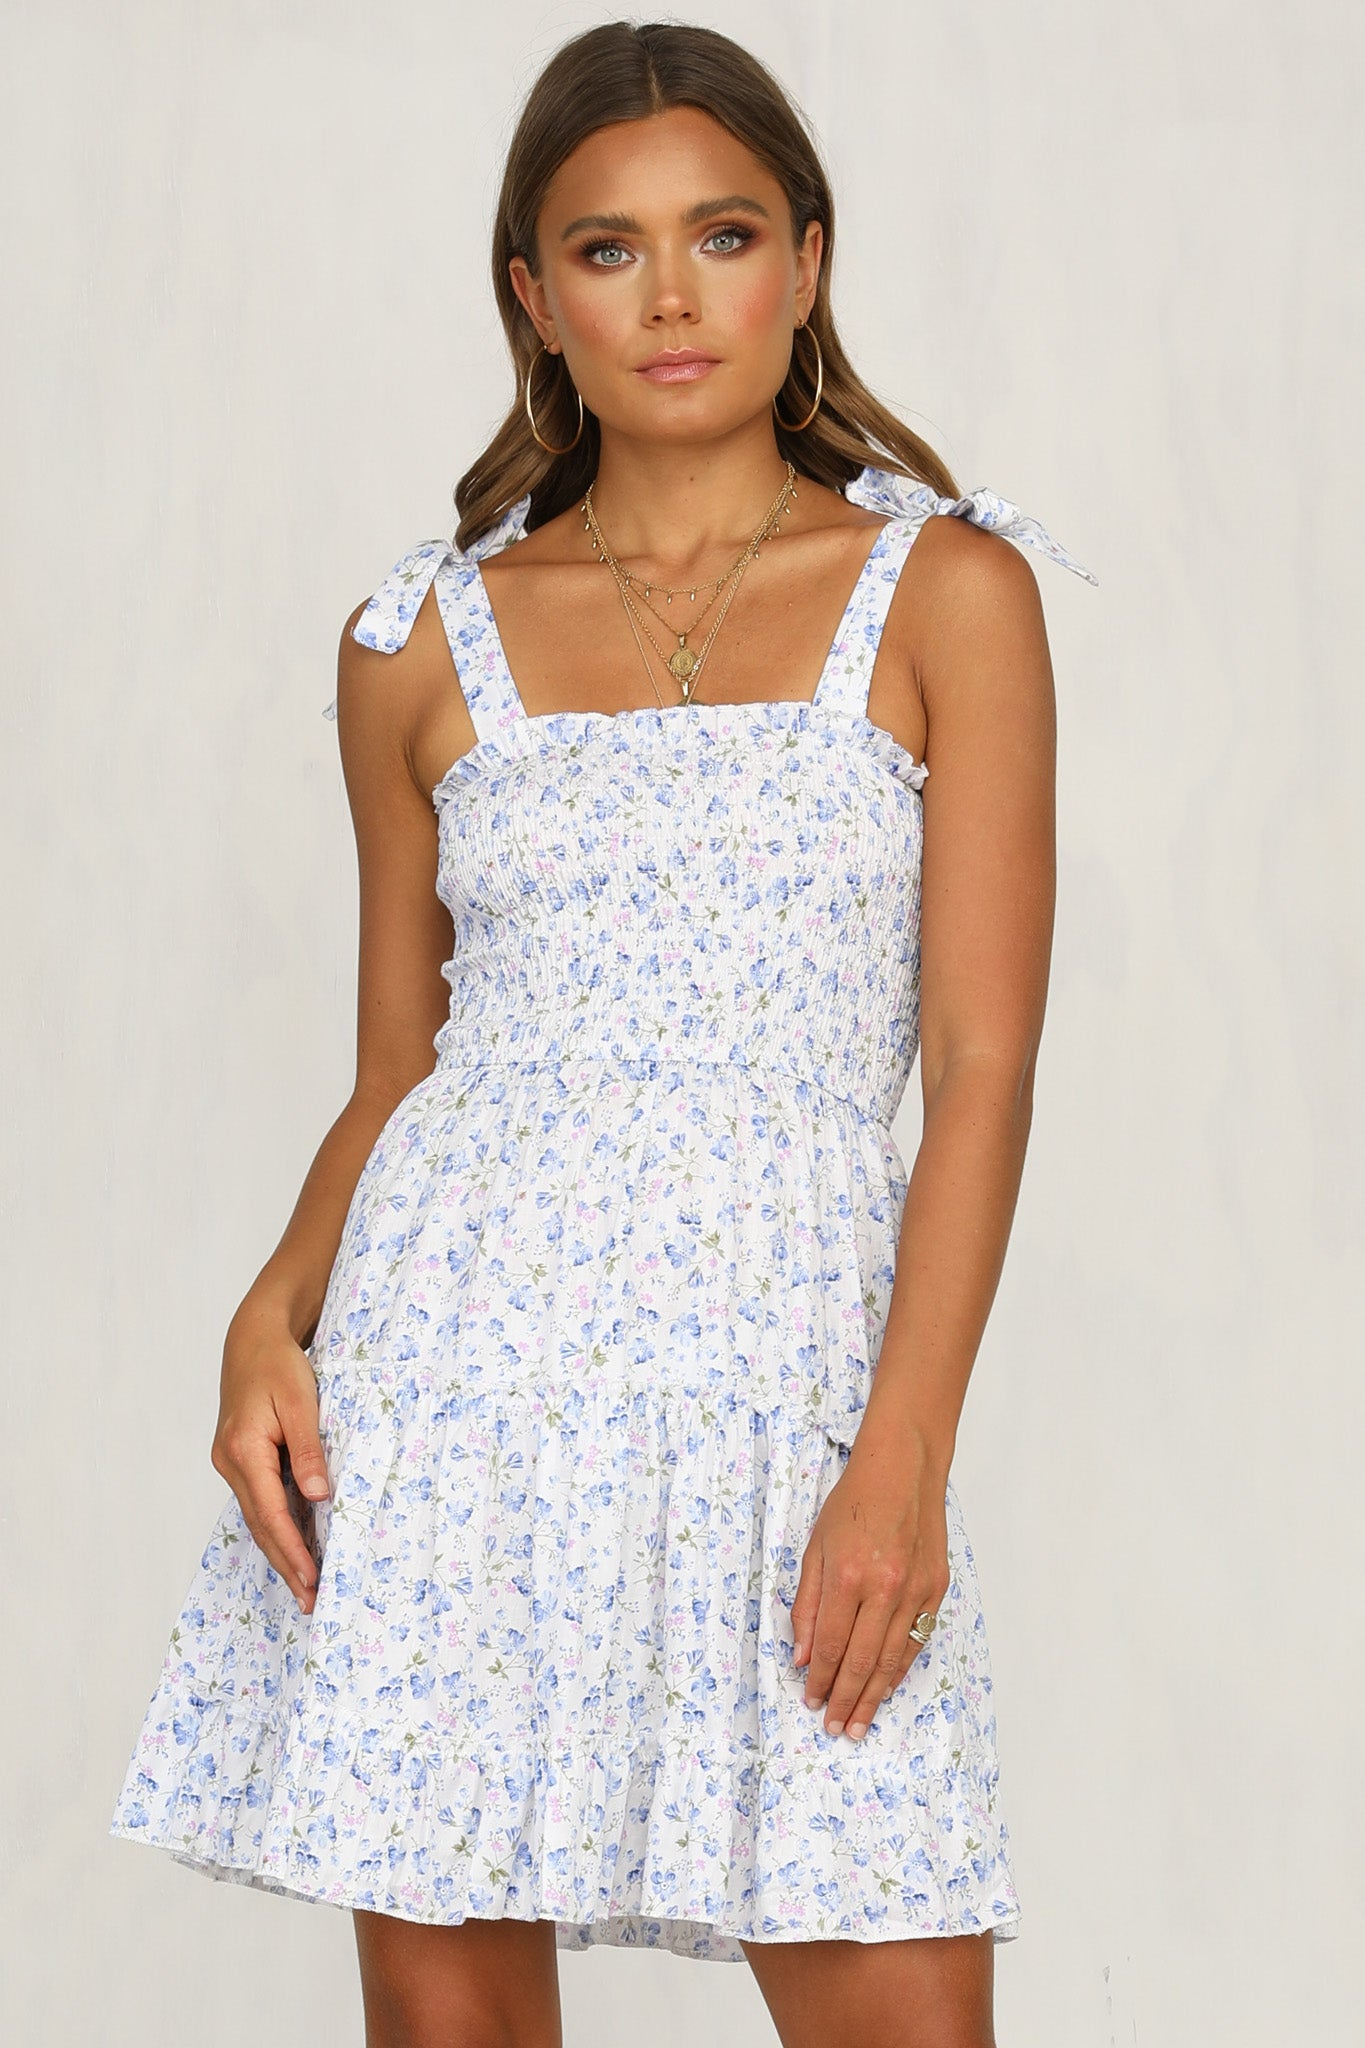 Next Question Dress (Blue)